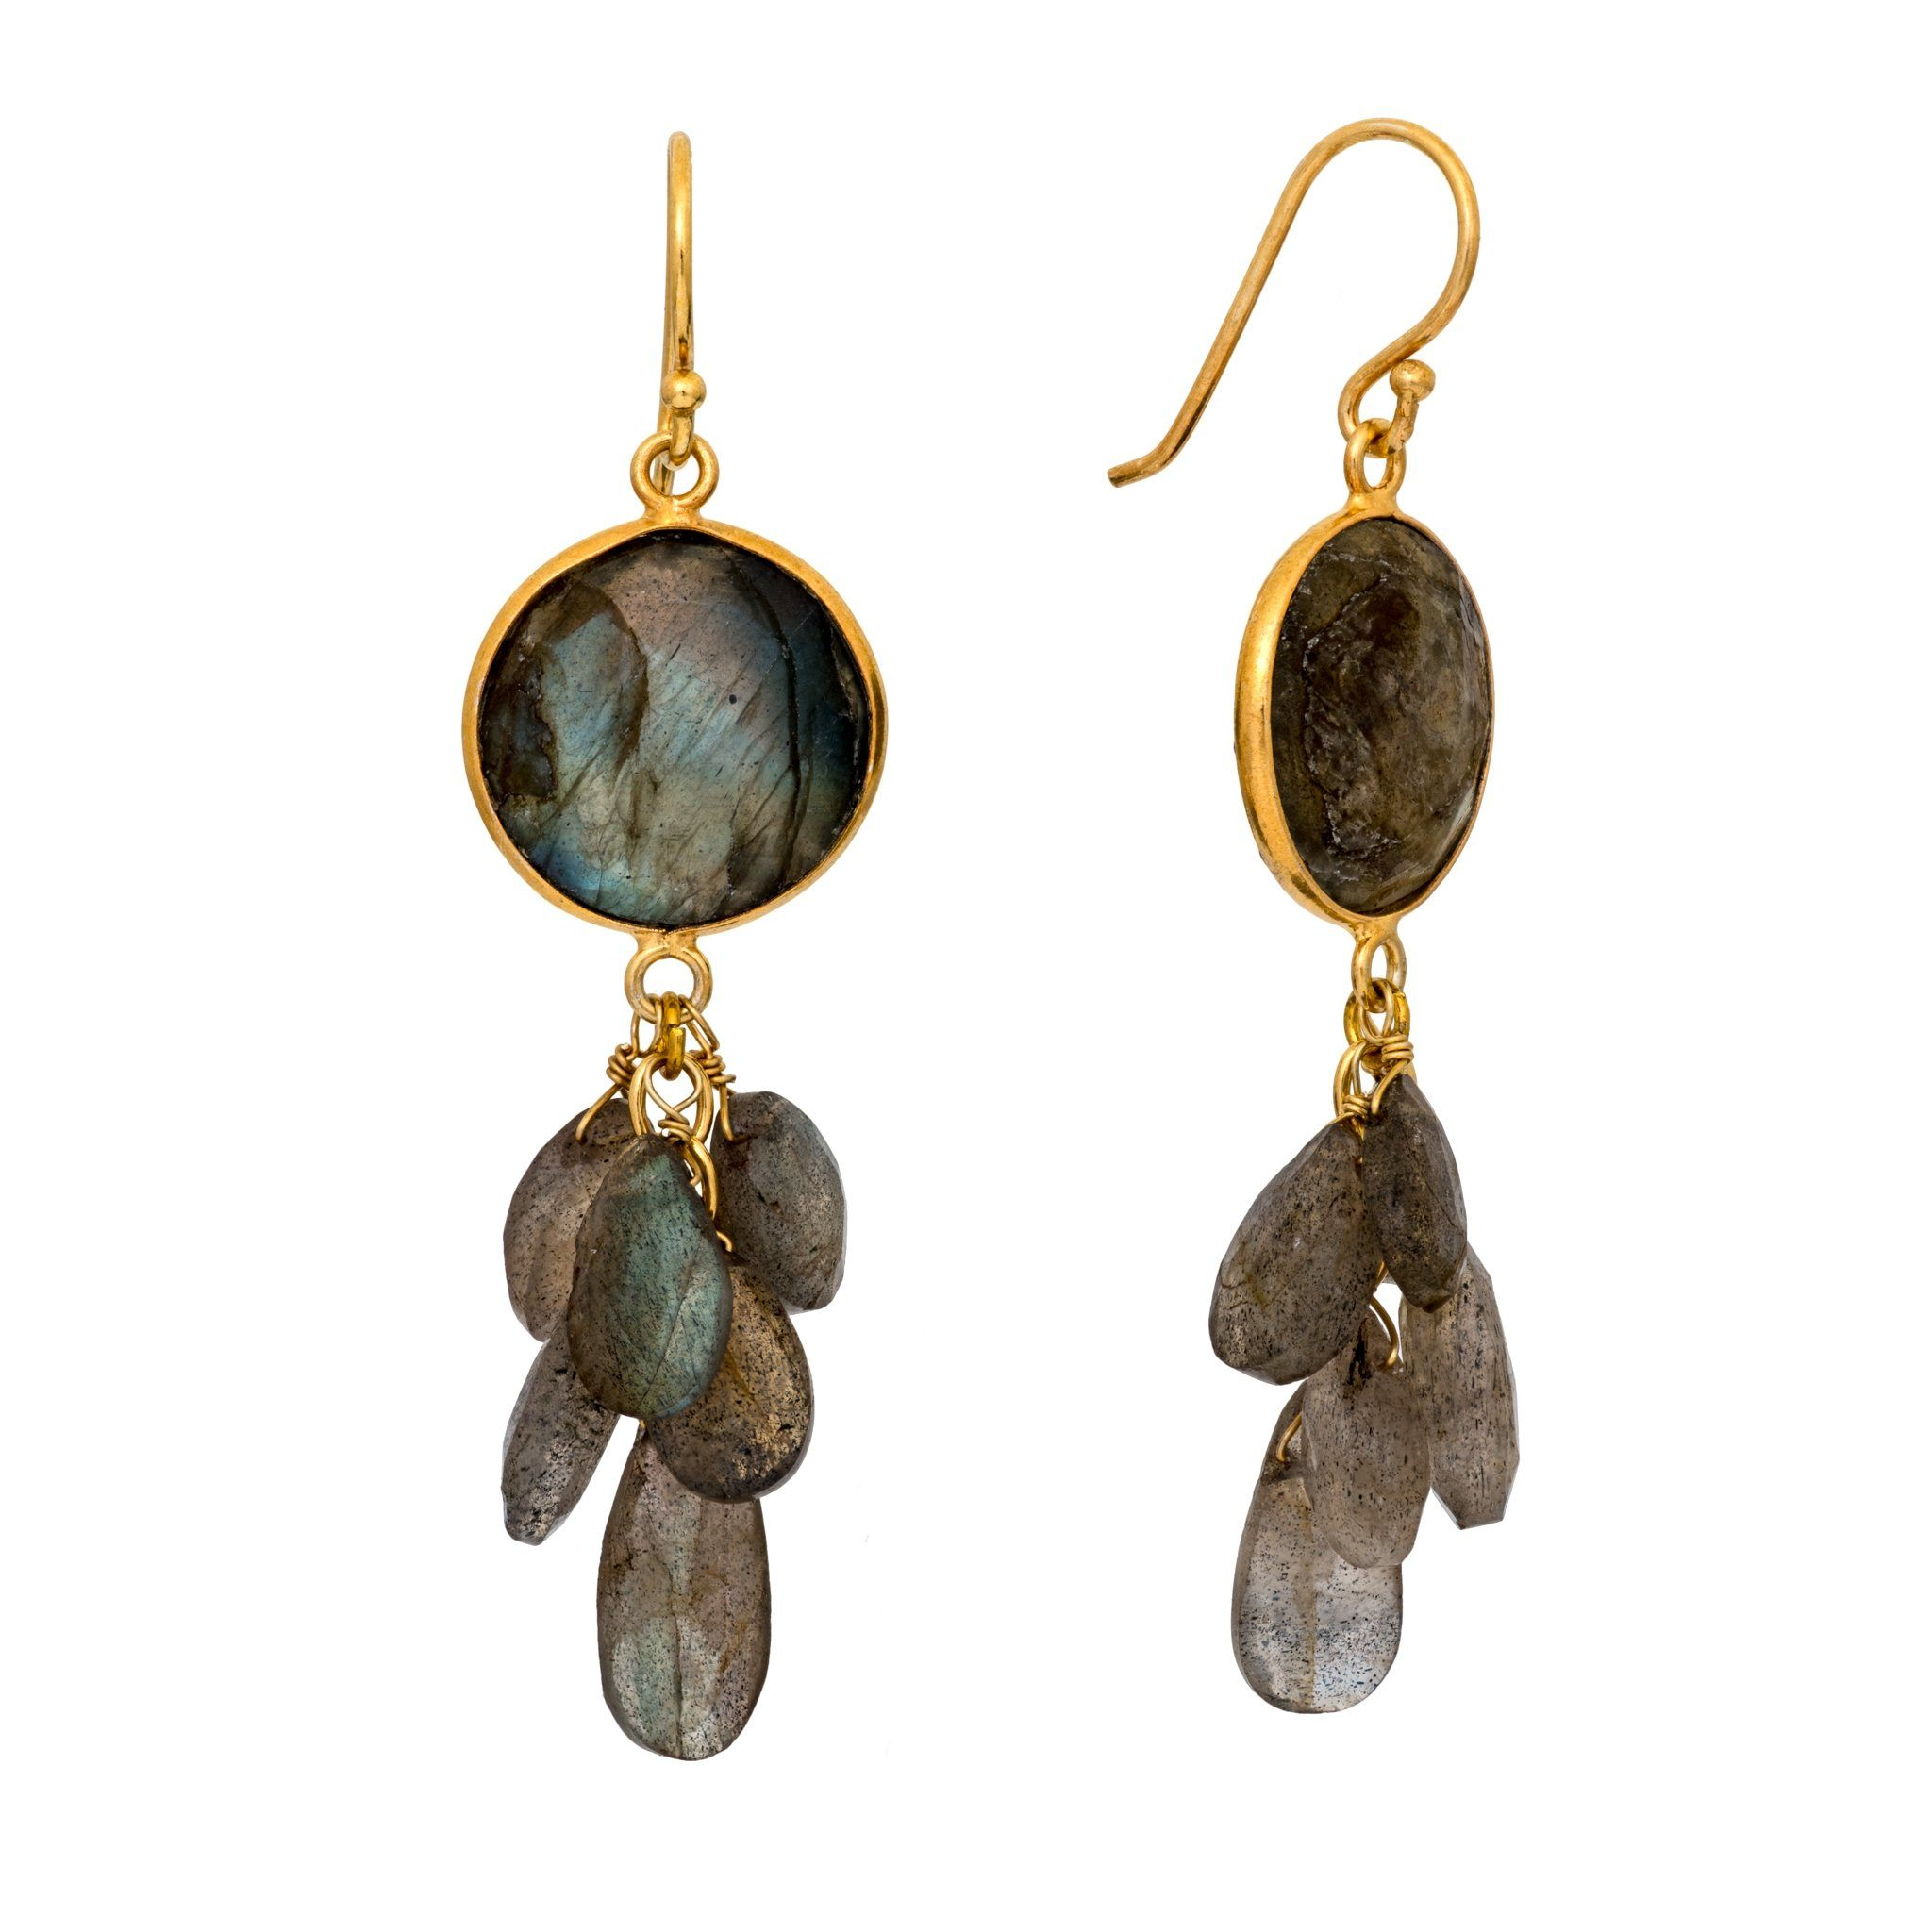 LUZ labradorite cluster earrings - MadamSiam